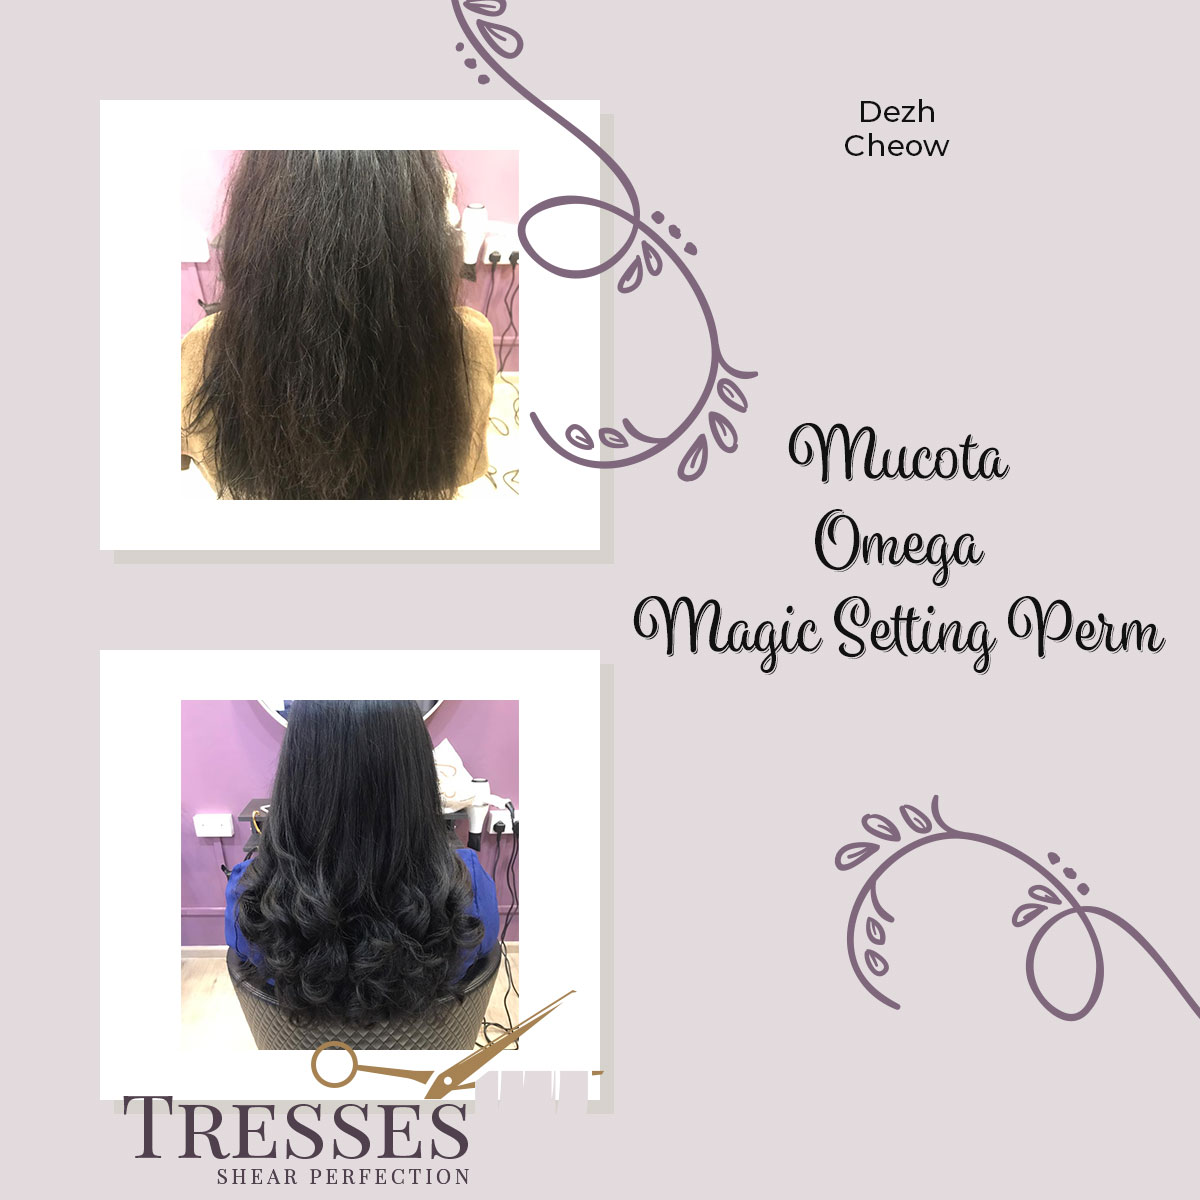 Omega Magic Setting Perm by Dezh